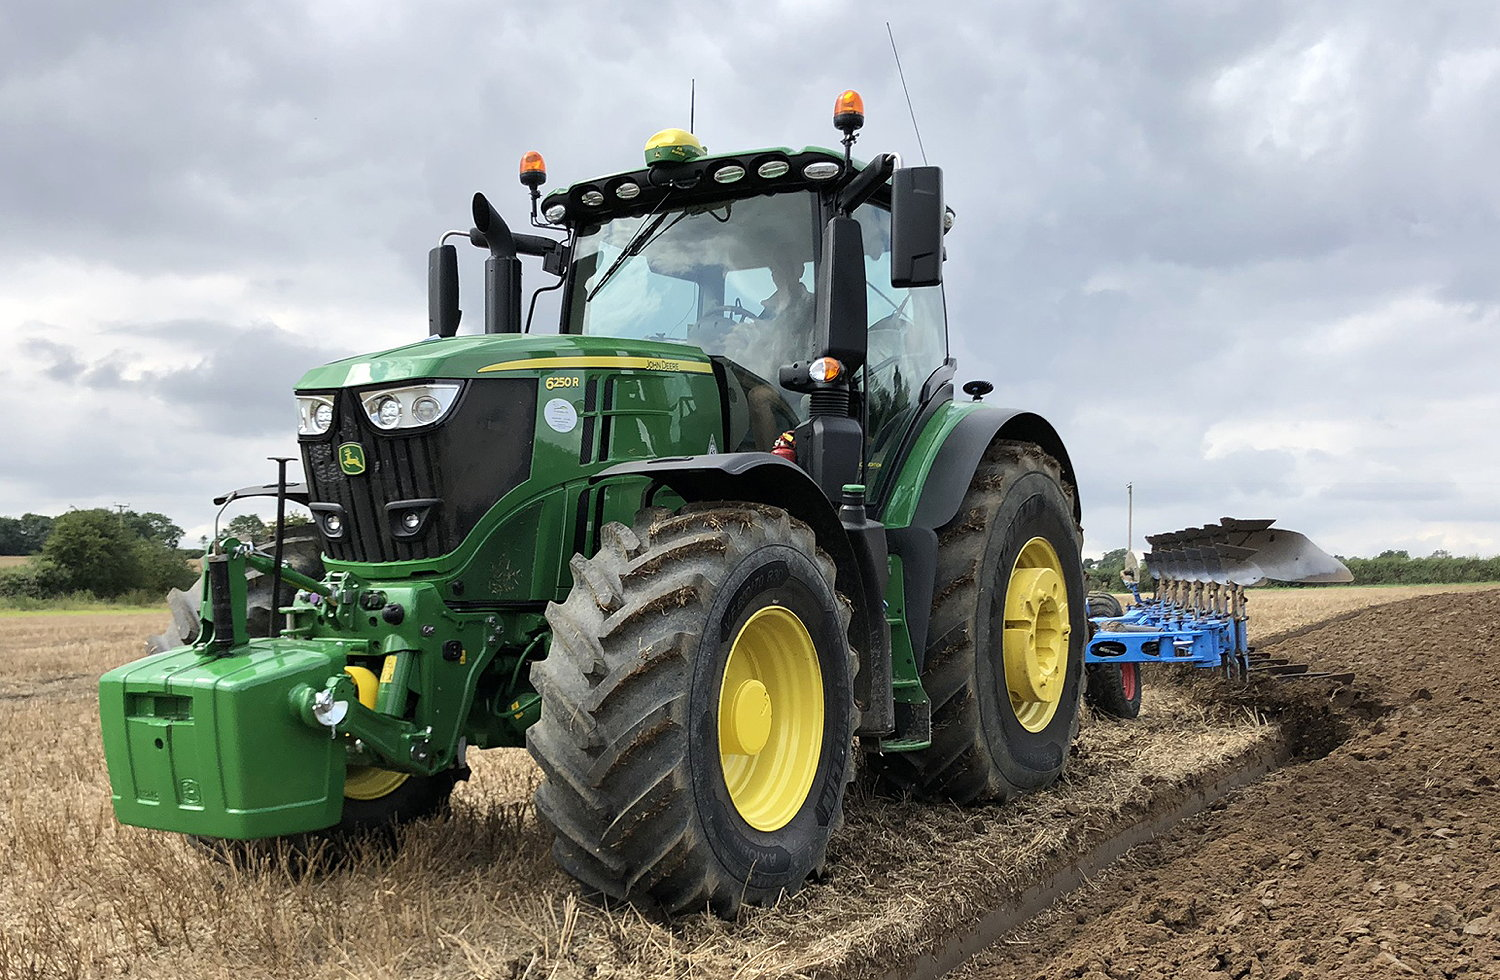 Fitting the latest Michelin AxioBib 2 tyres with VF technology has further improved the performance of Bedfordia's new Deere 6250R tractors